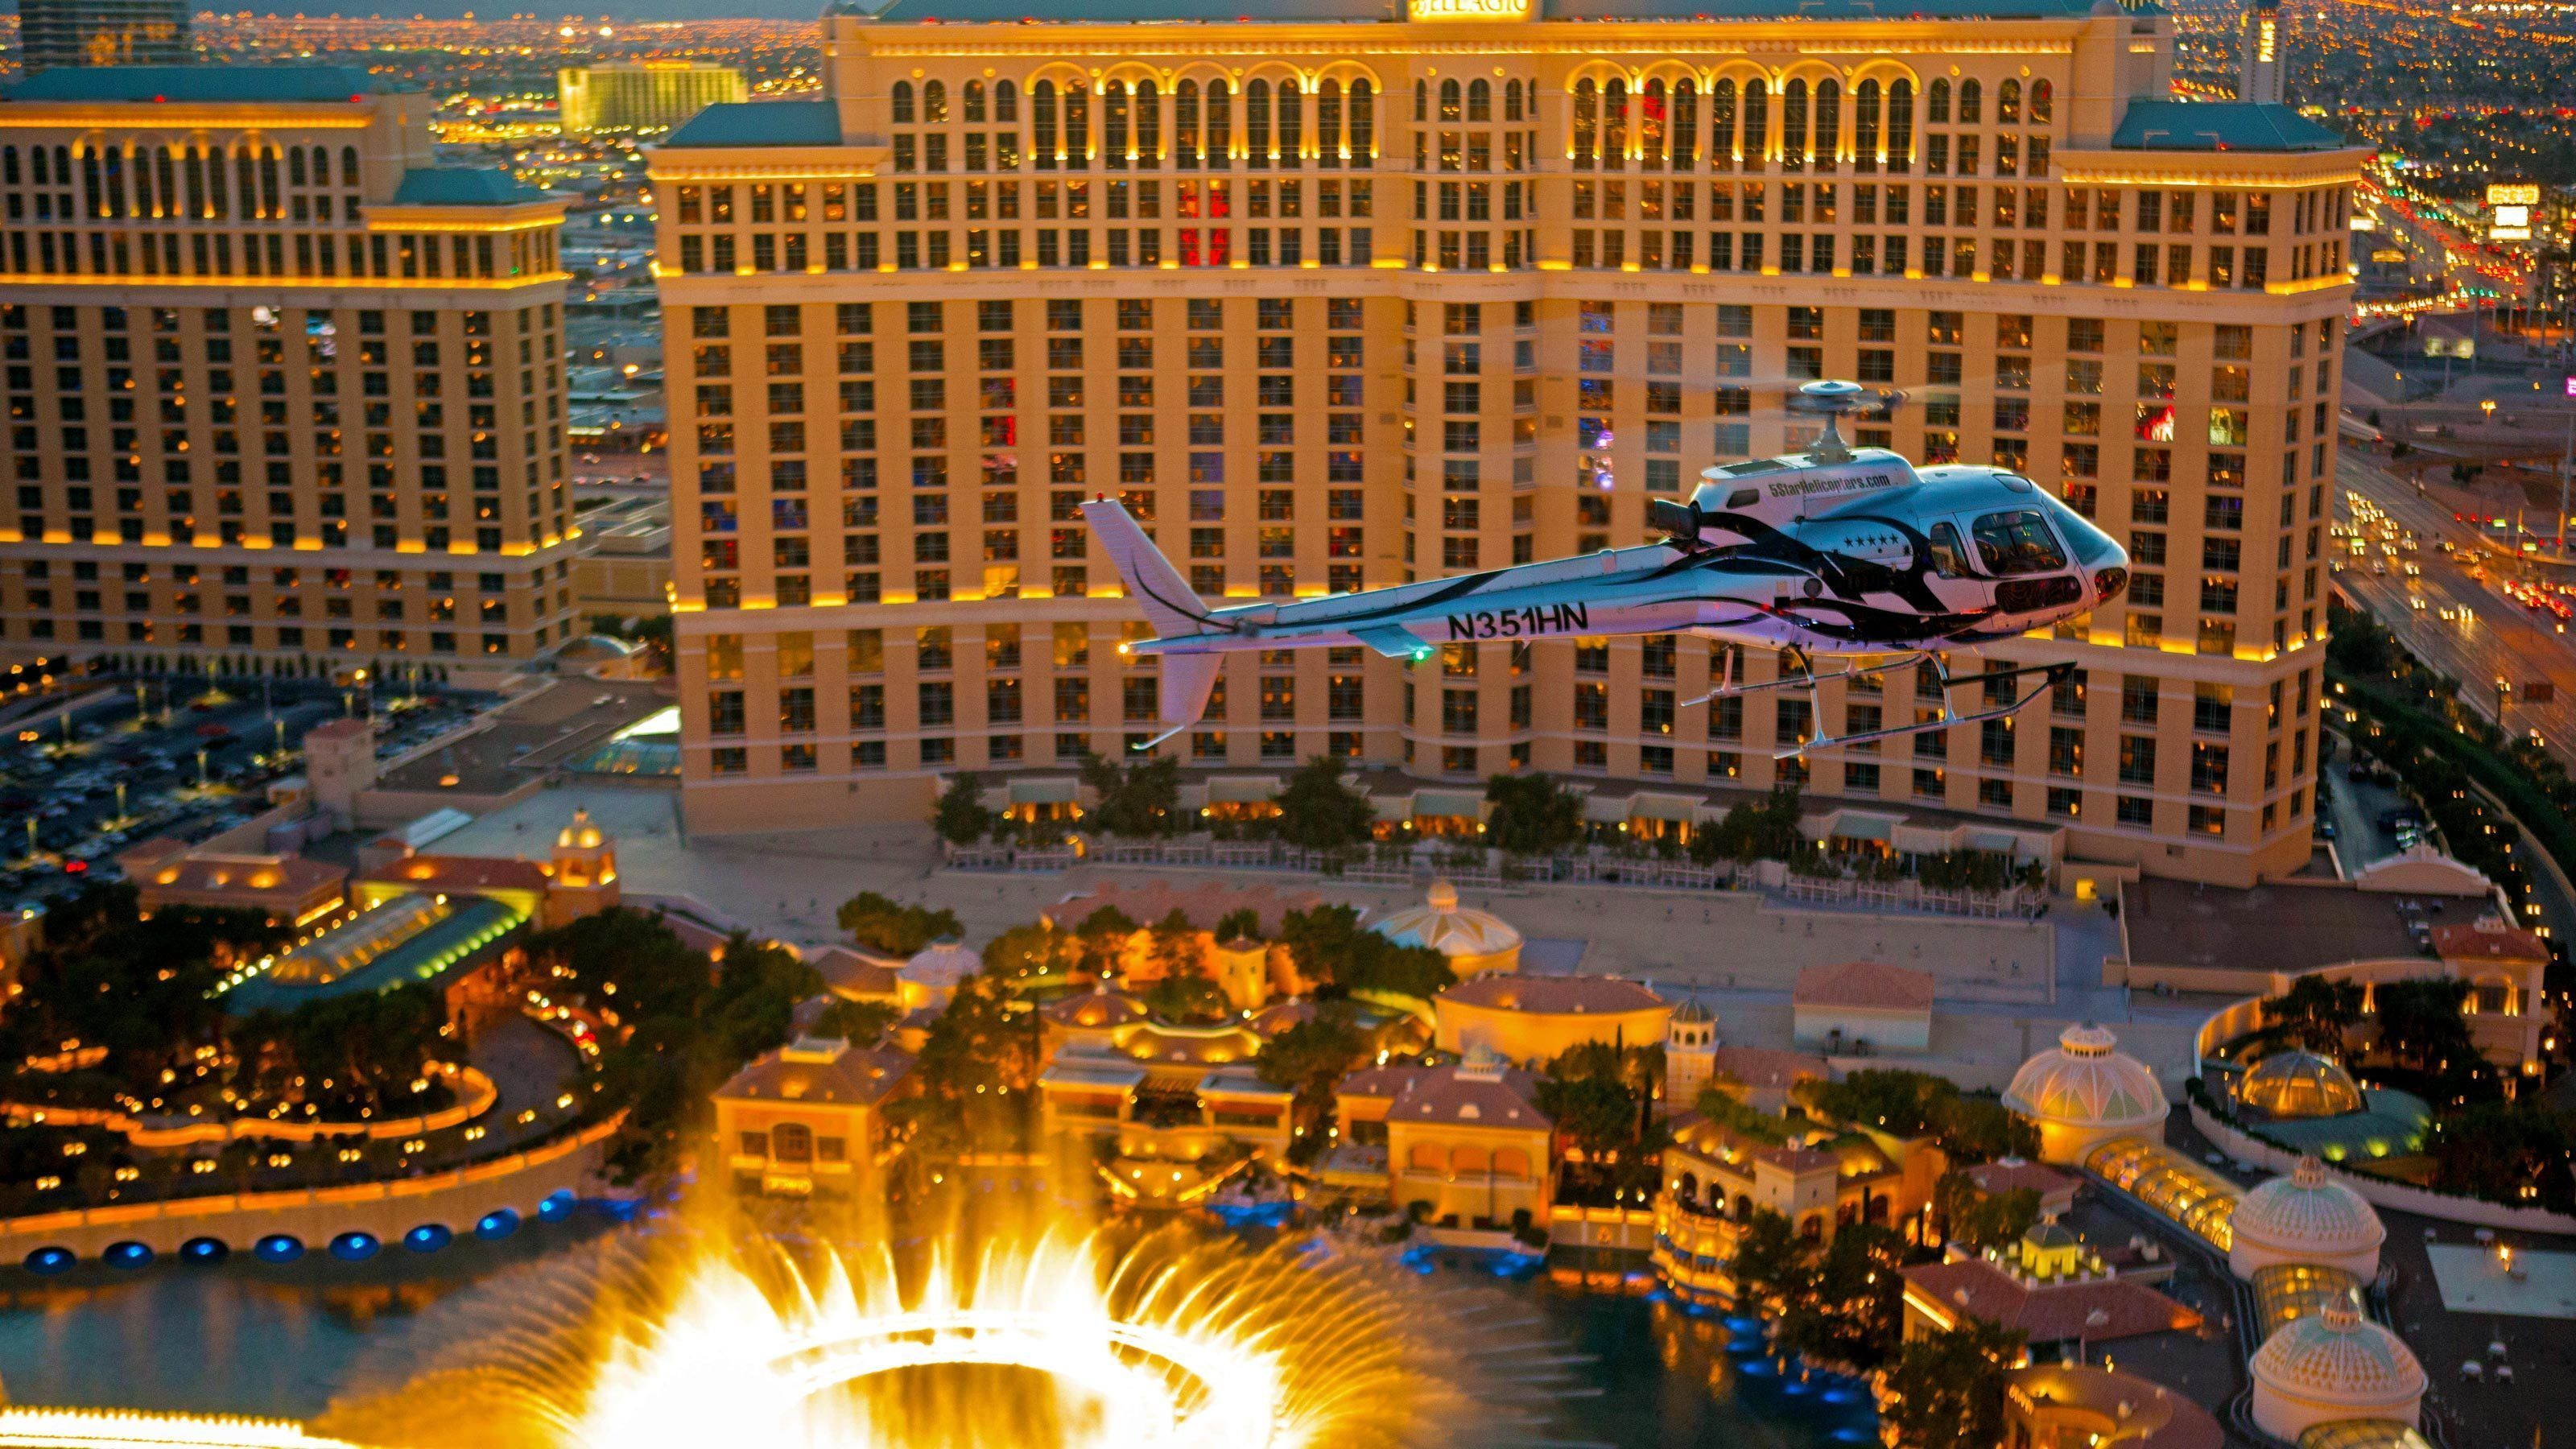 Helicopter flying by the Bellagio Hotel in Las Vegas